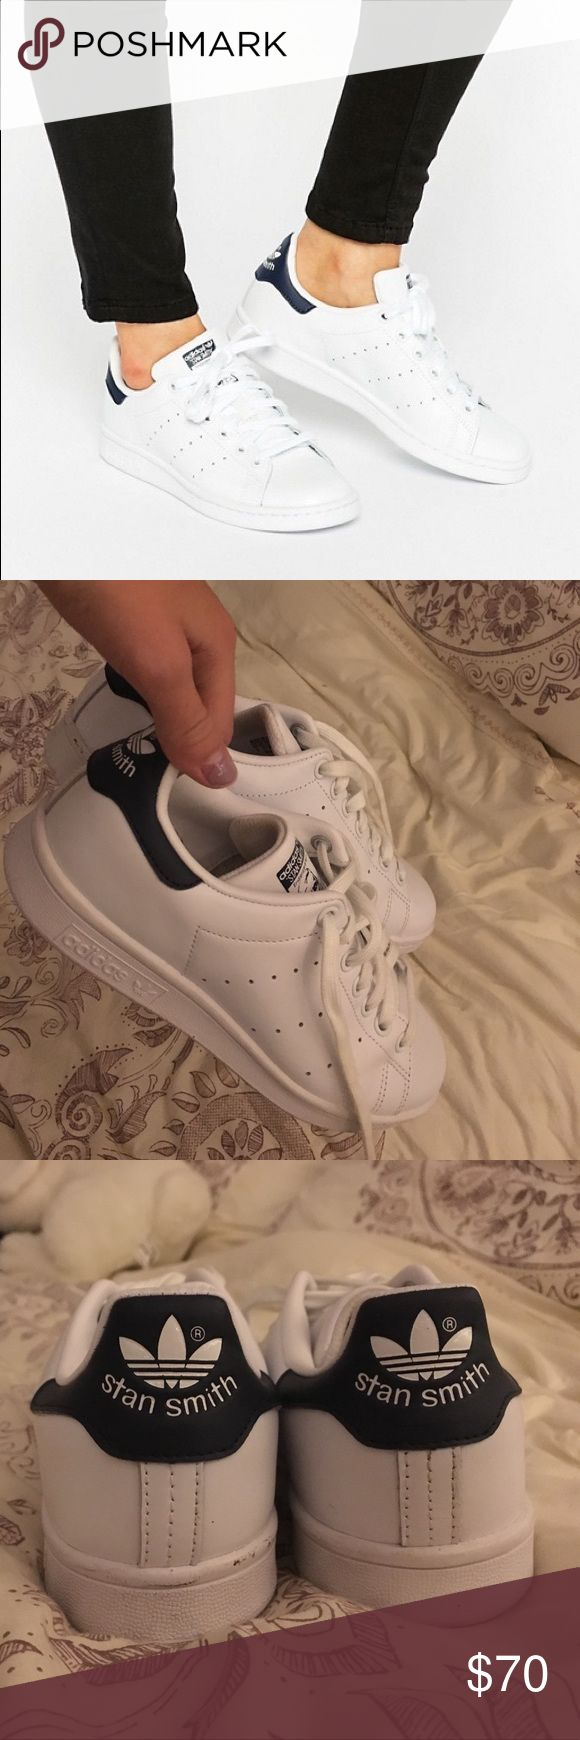 Adidas Stan Smith Sneakers WORN 2 TIMES Stan Smith Adidas shoes. Really clean and very good condition lots of room and very comfy!     Tags: Adidas, Nike, Converse, Vans. adidas Shoes Sneakers